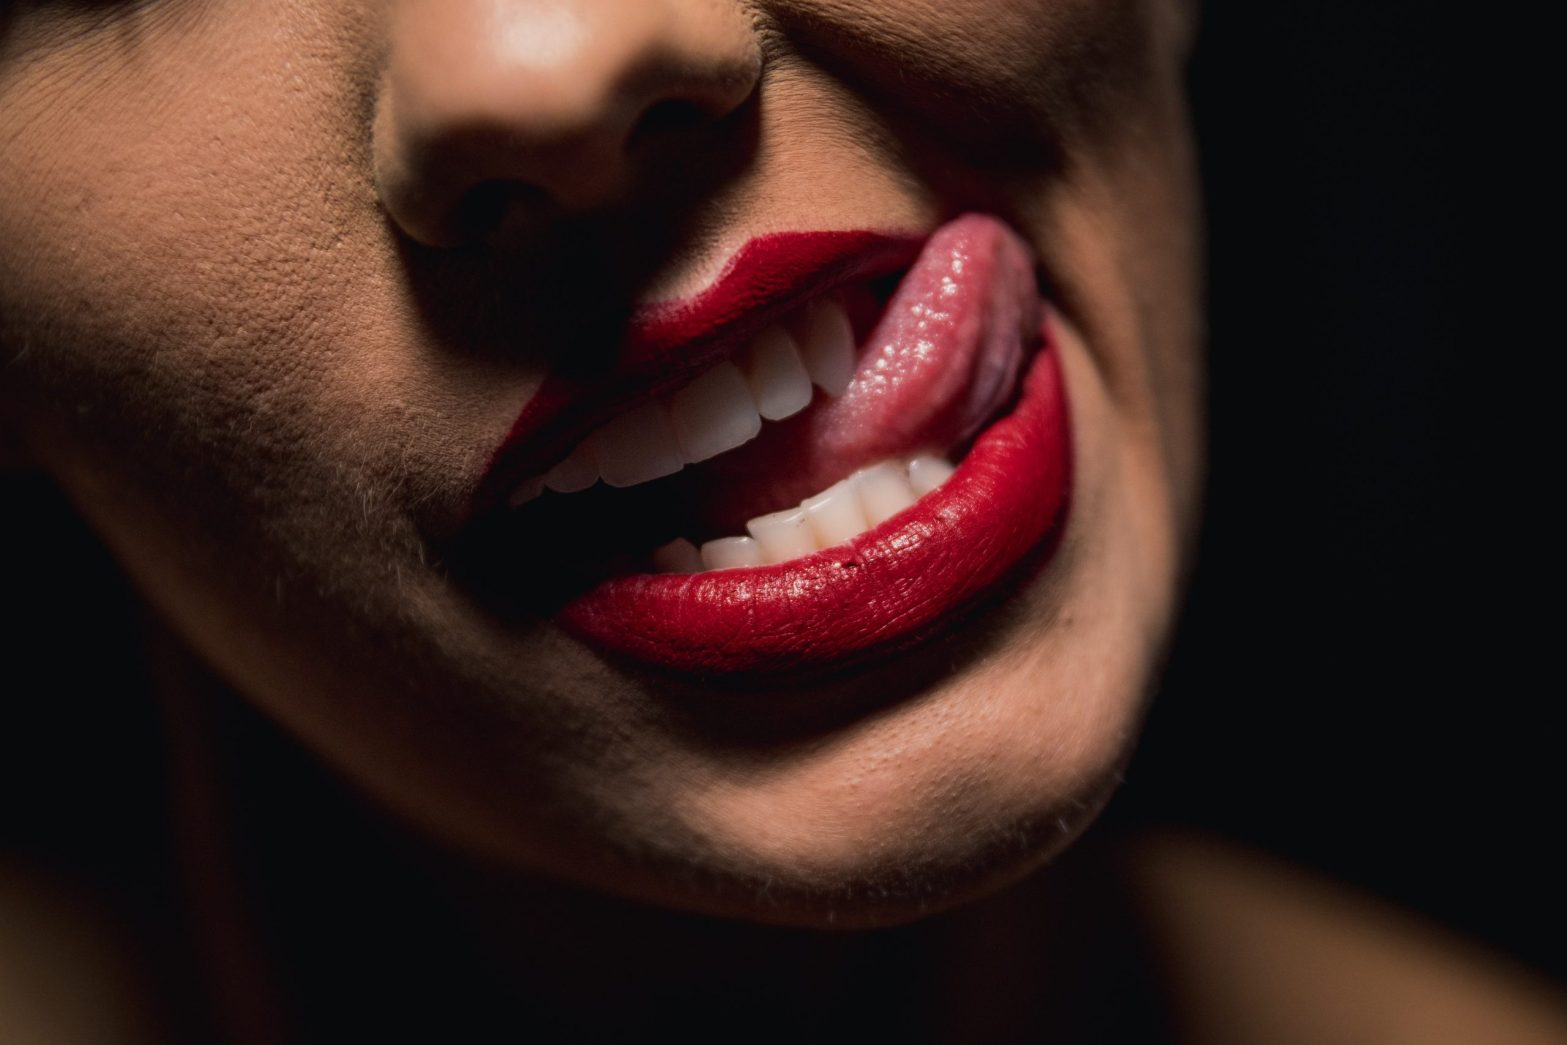 Mouth with red lipstick and tongue sticking out. Instant love, just add sex.